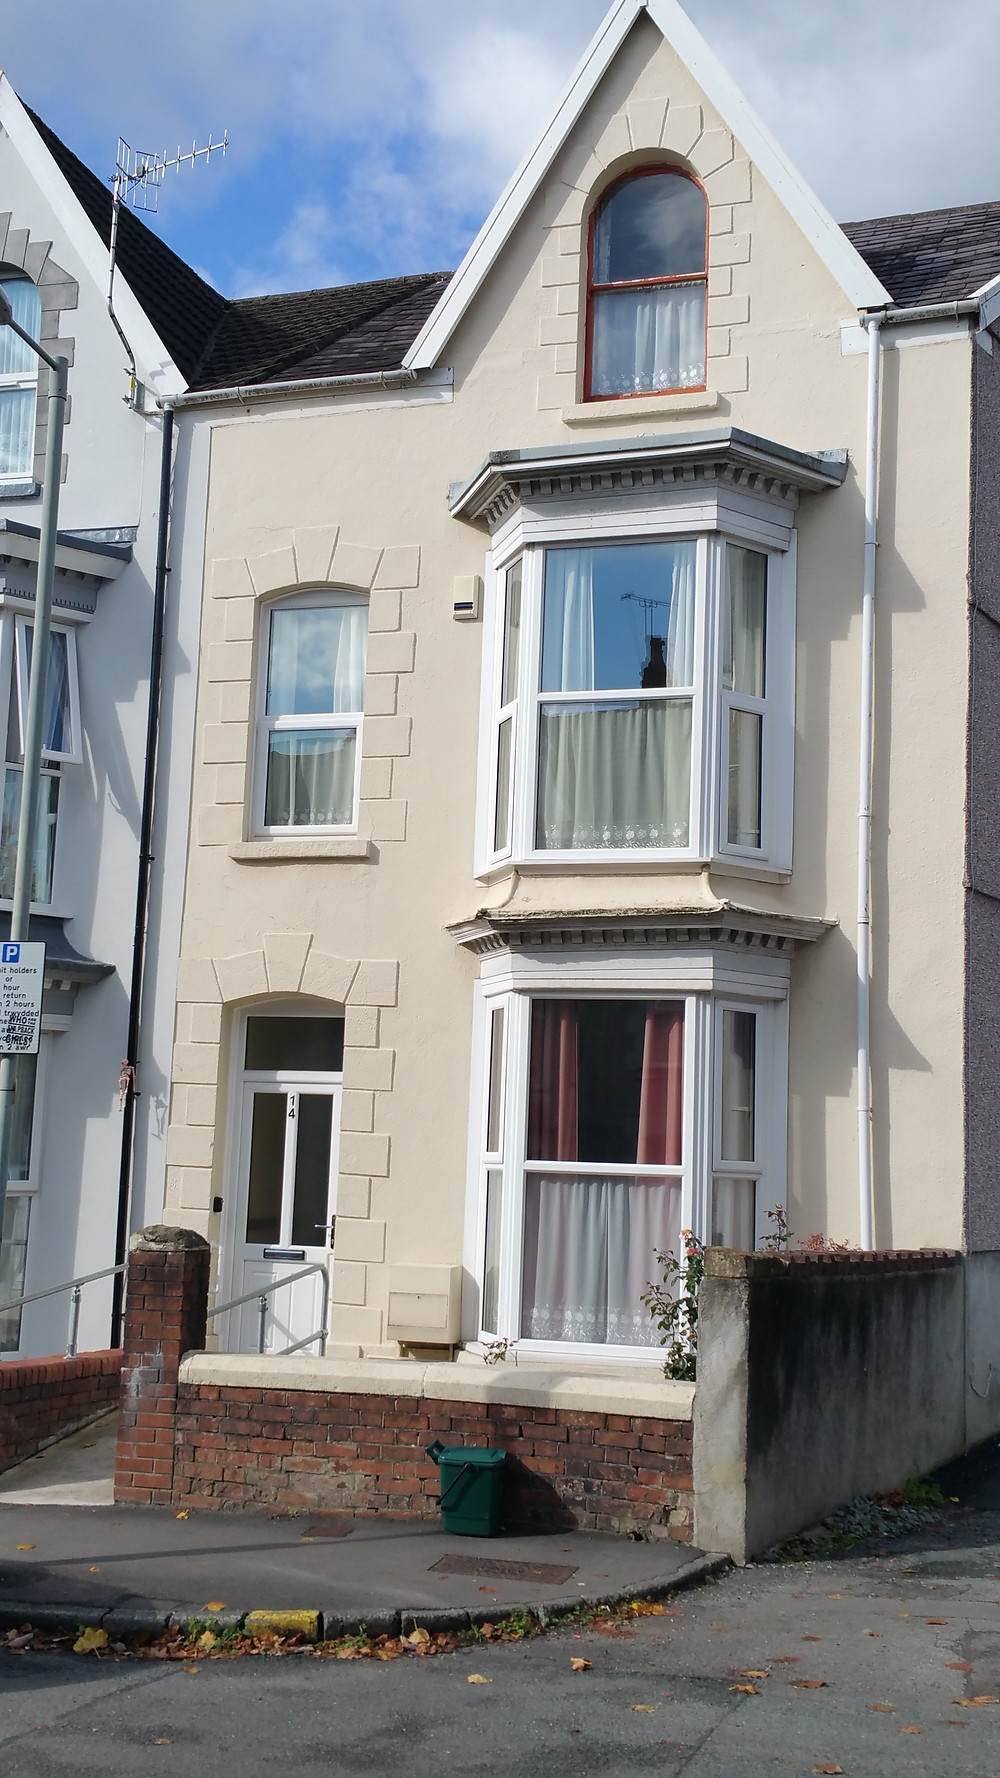 University Swansea Student Accommodation House Property Lets Digs